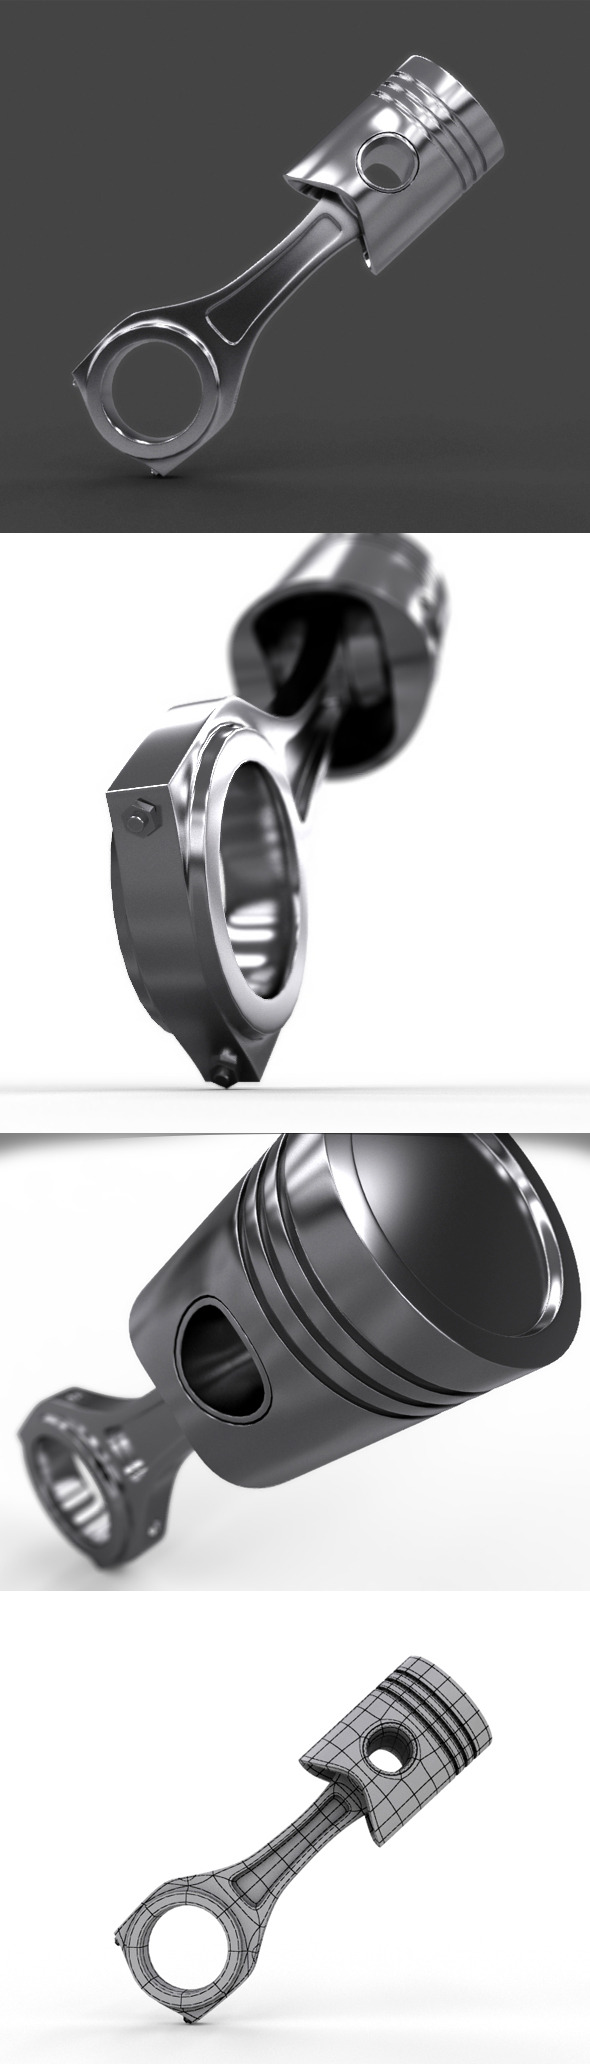 Realistic Piston With Material